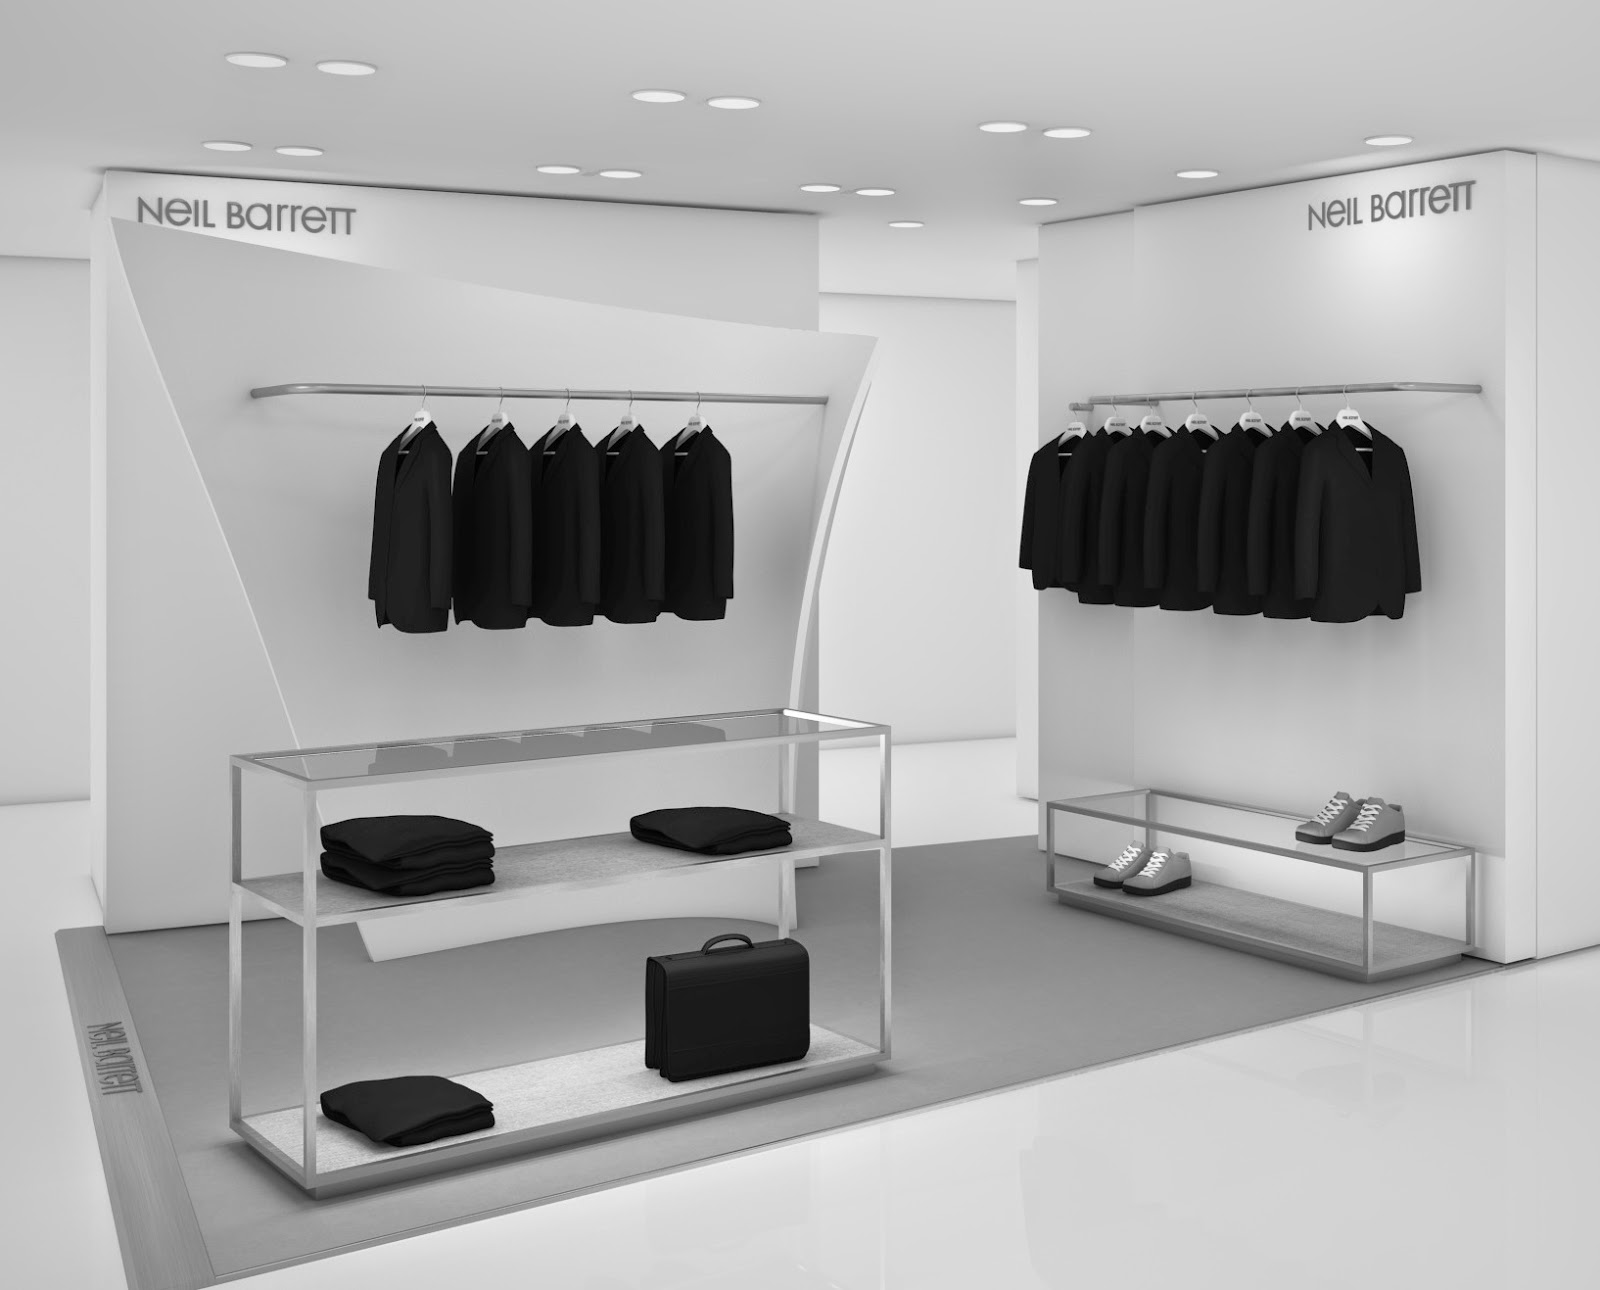 Neil Barrett shop-in-shop at Harvey Nichols London, designed by Zaha Hadid